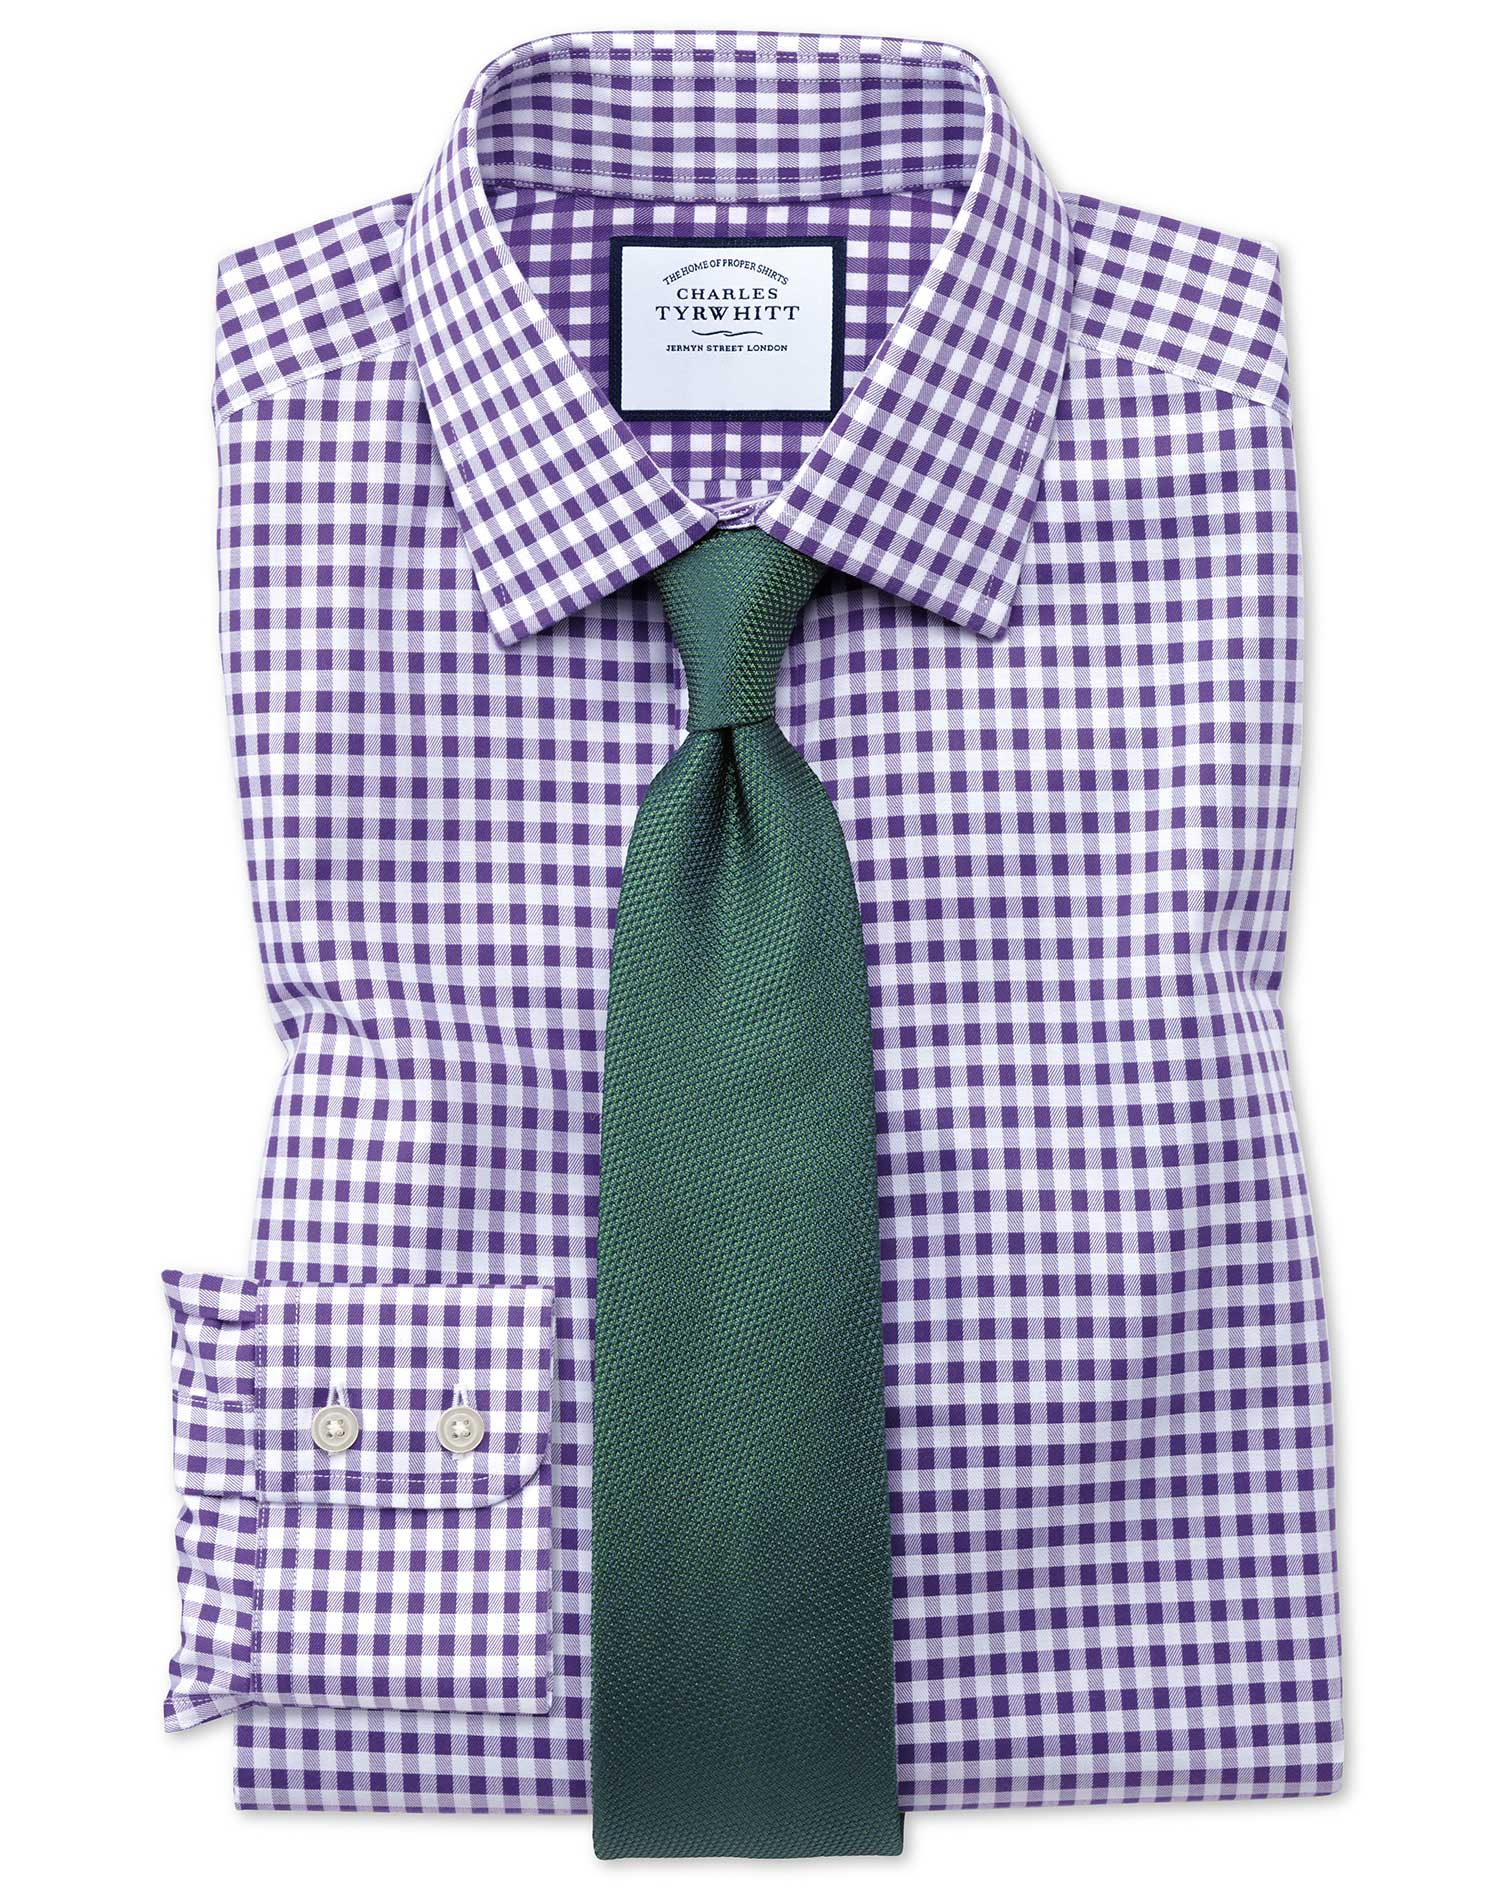 Classic Fit Non-Iron Gingham Purple Cotton Formal Shirt Single Cuff Size 17/34 by Charles Tyrwhitt